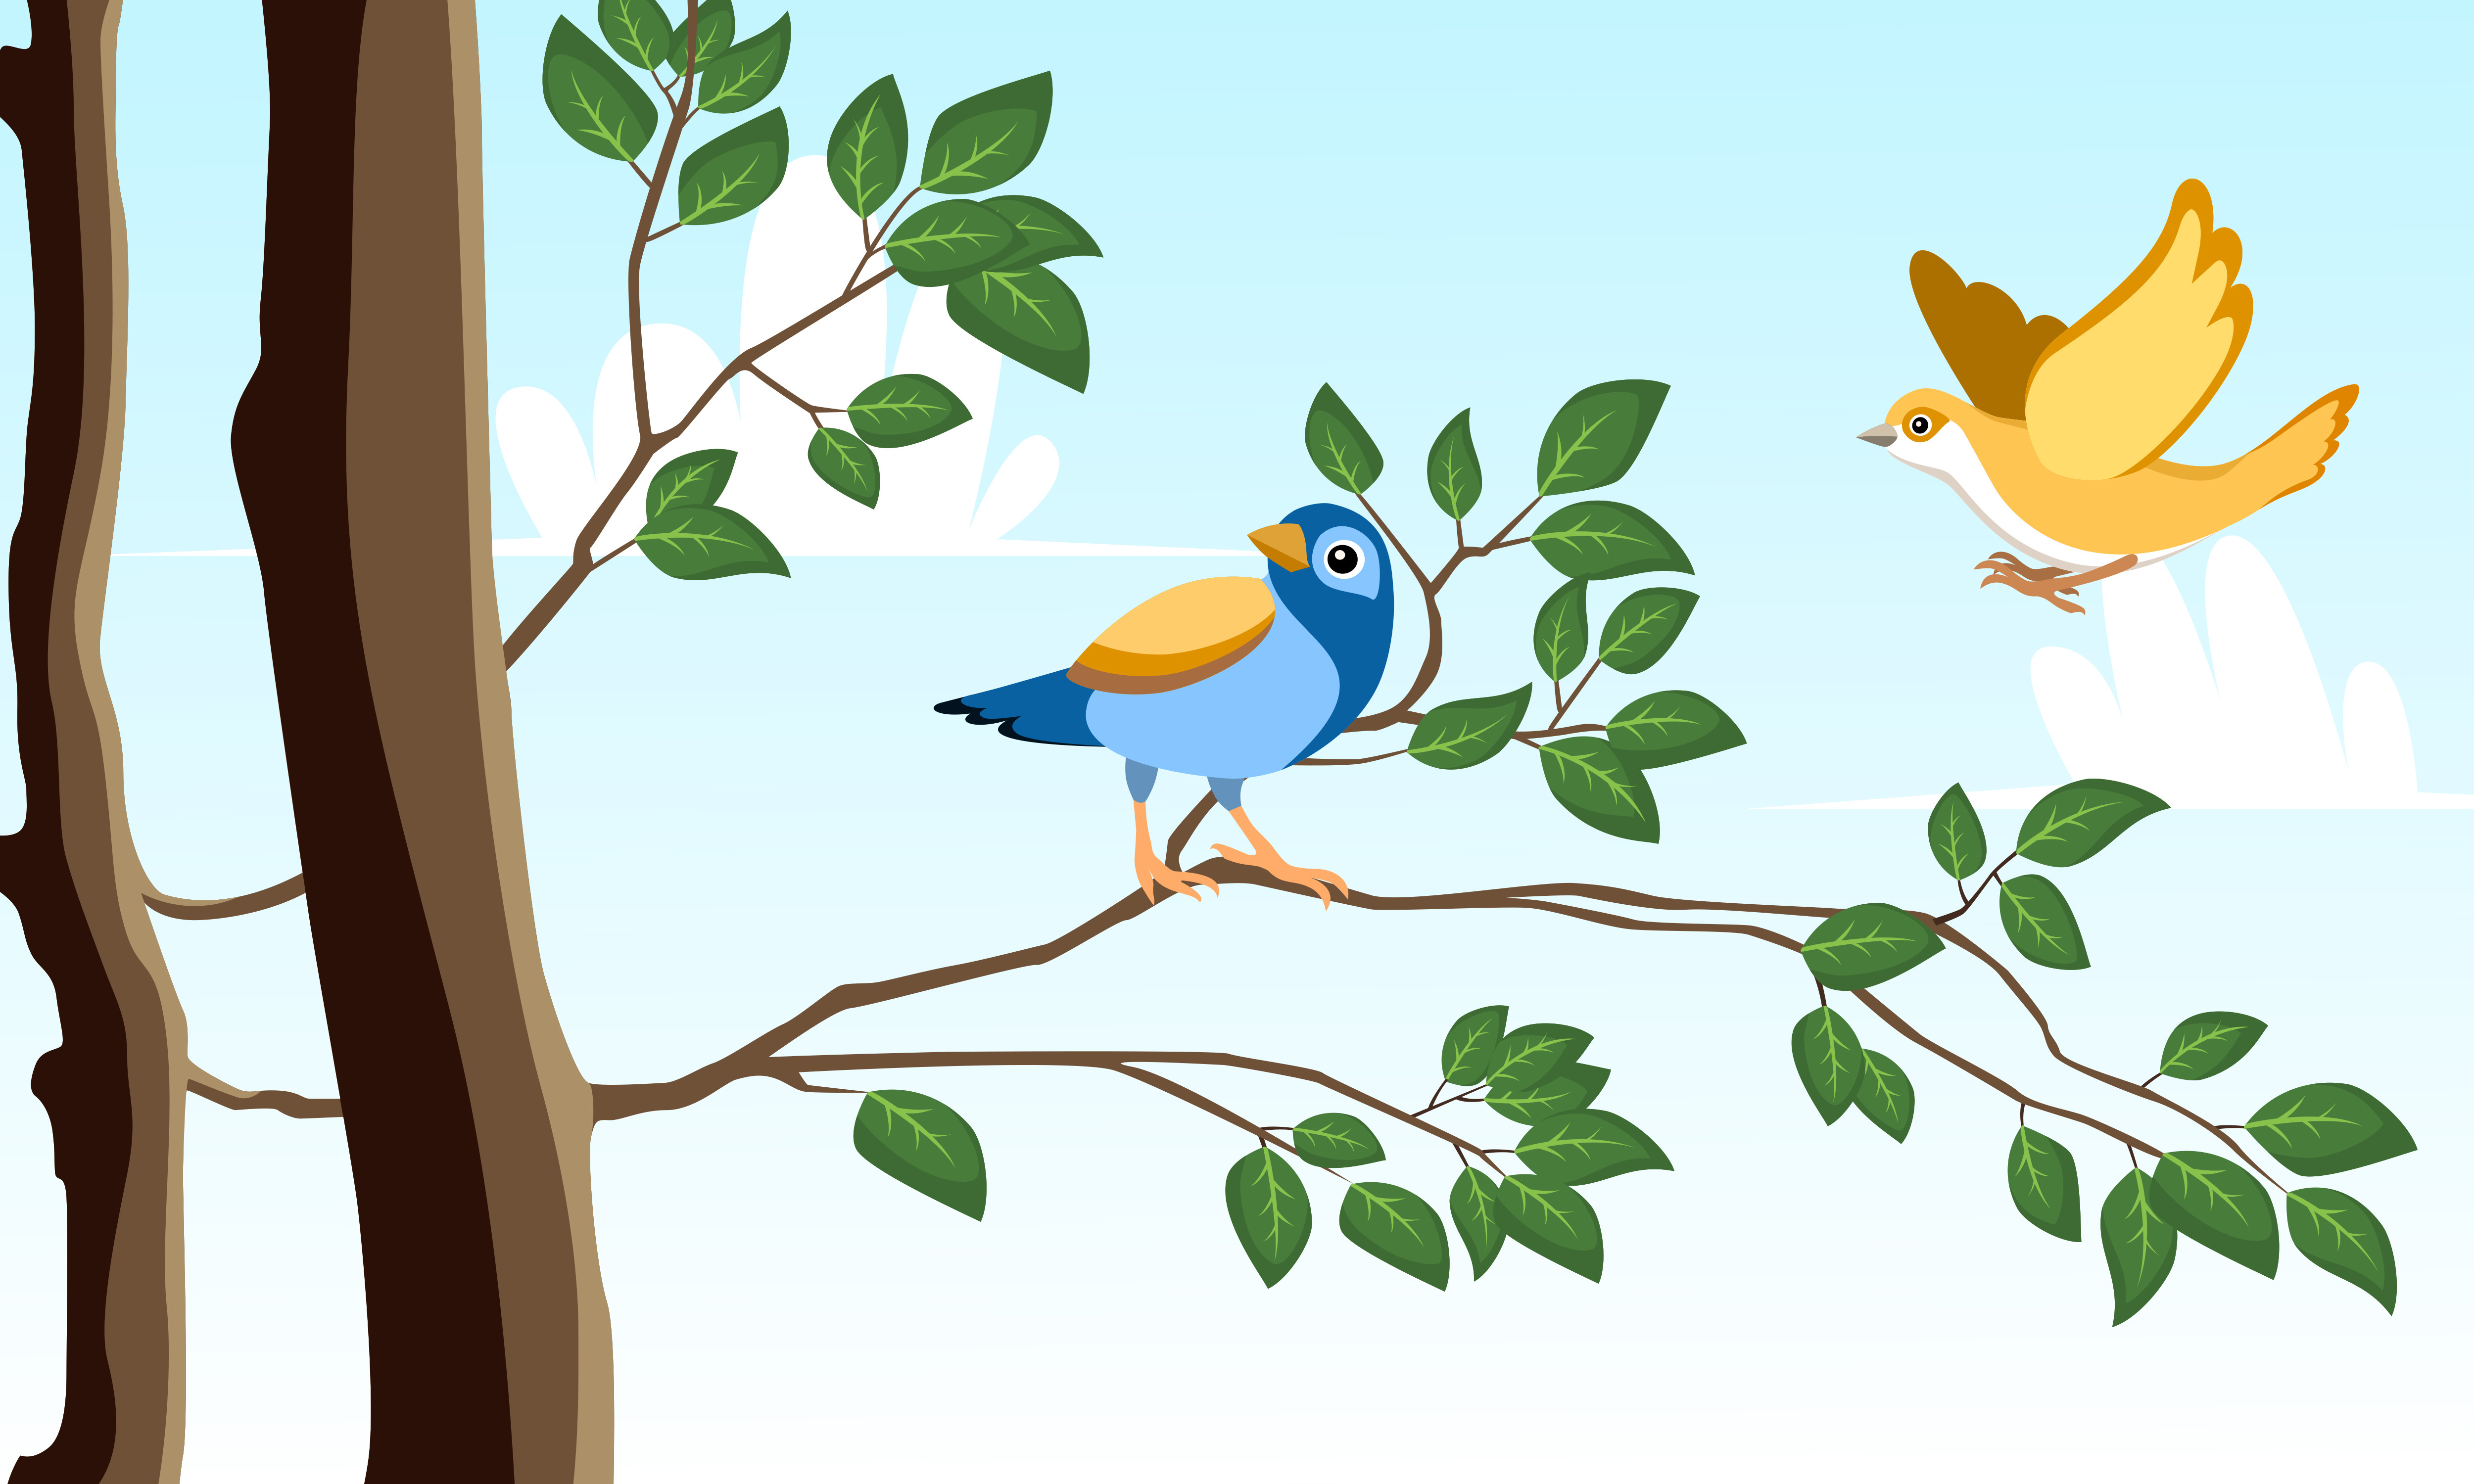 Biology All About Birds Level 1 Activity For Kids